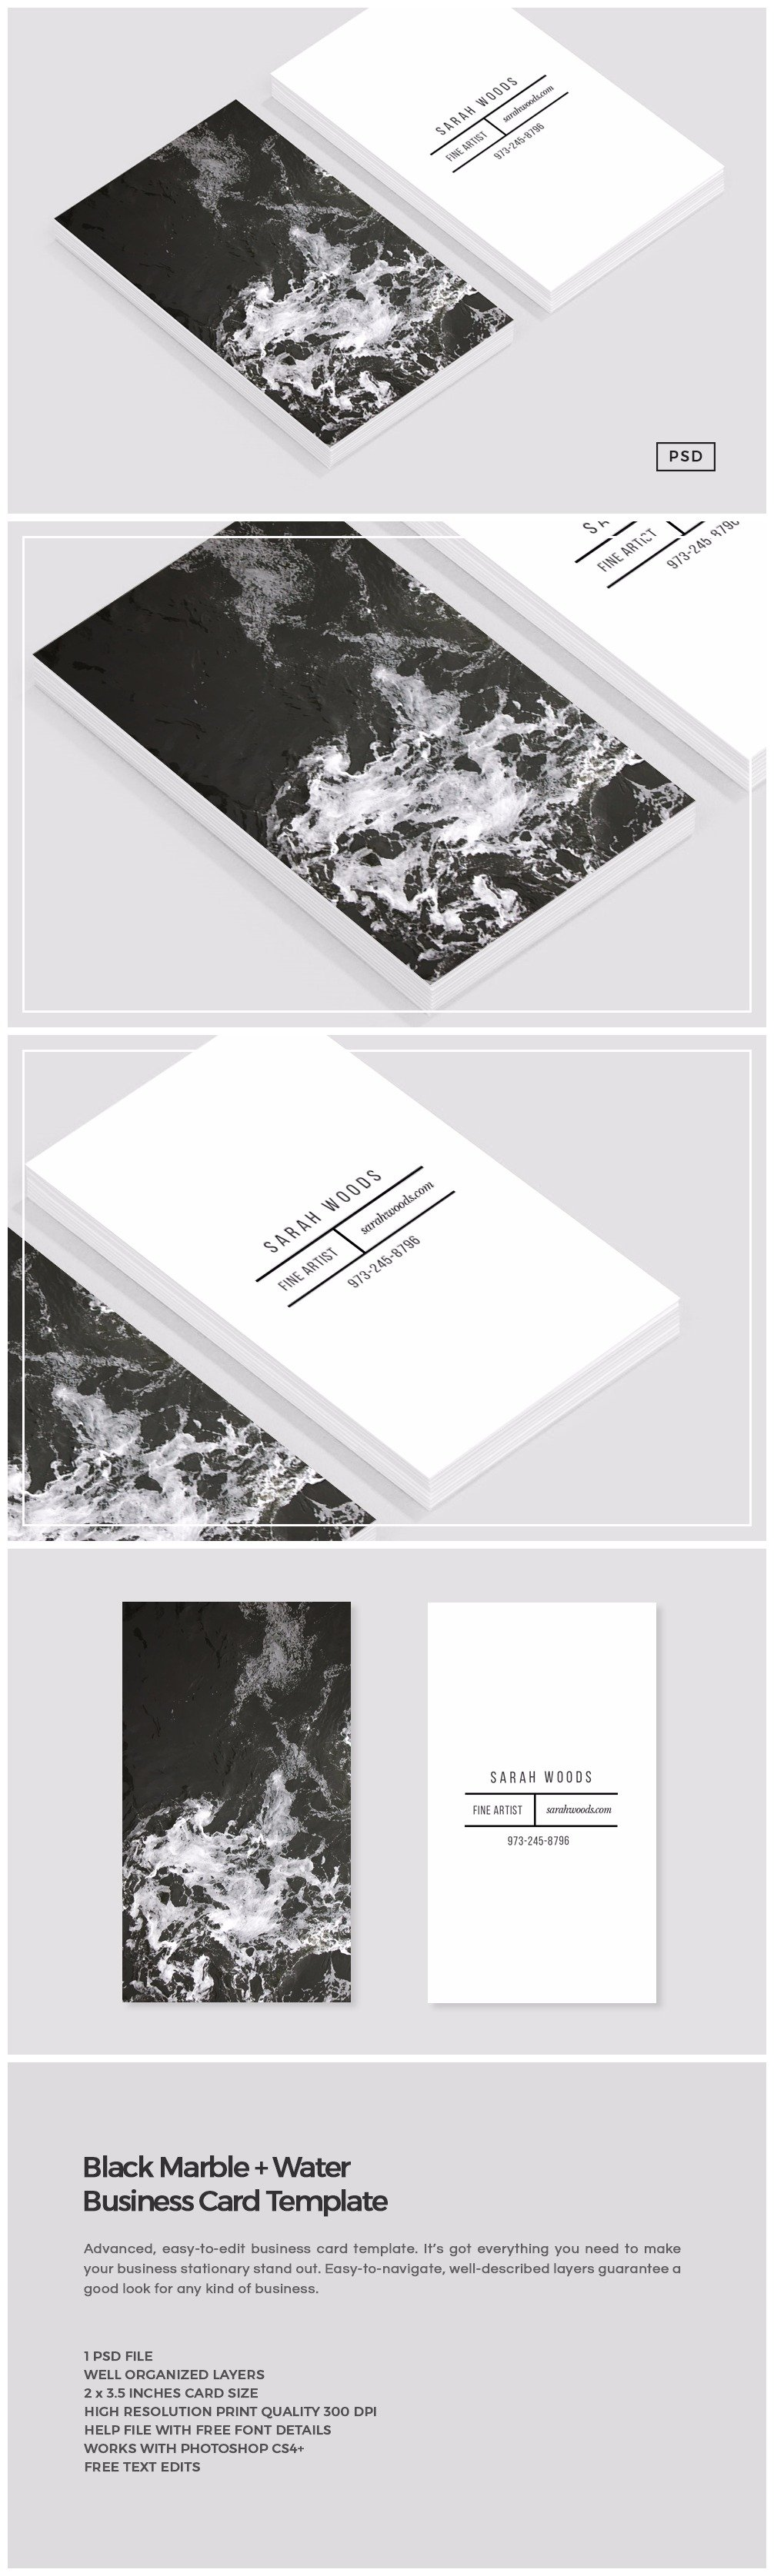 Black marble business card template business card templates black marble business card template business card templates creative market reheart Gallery